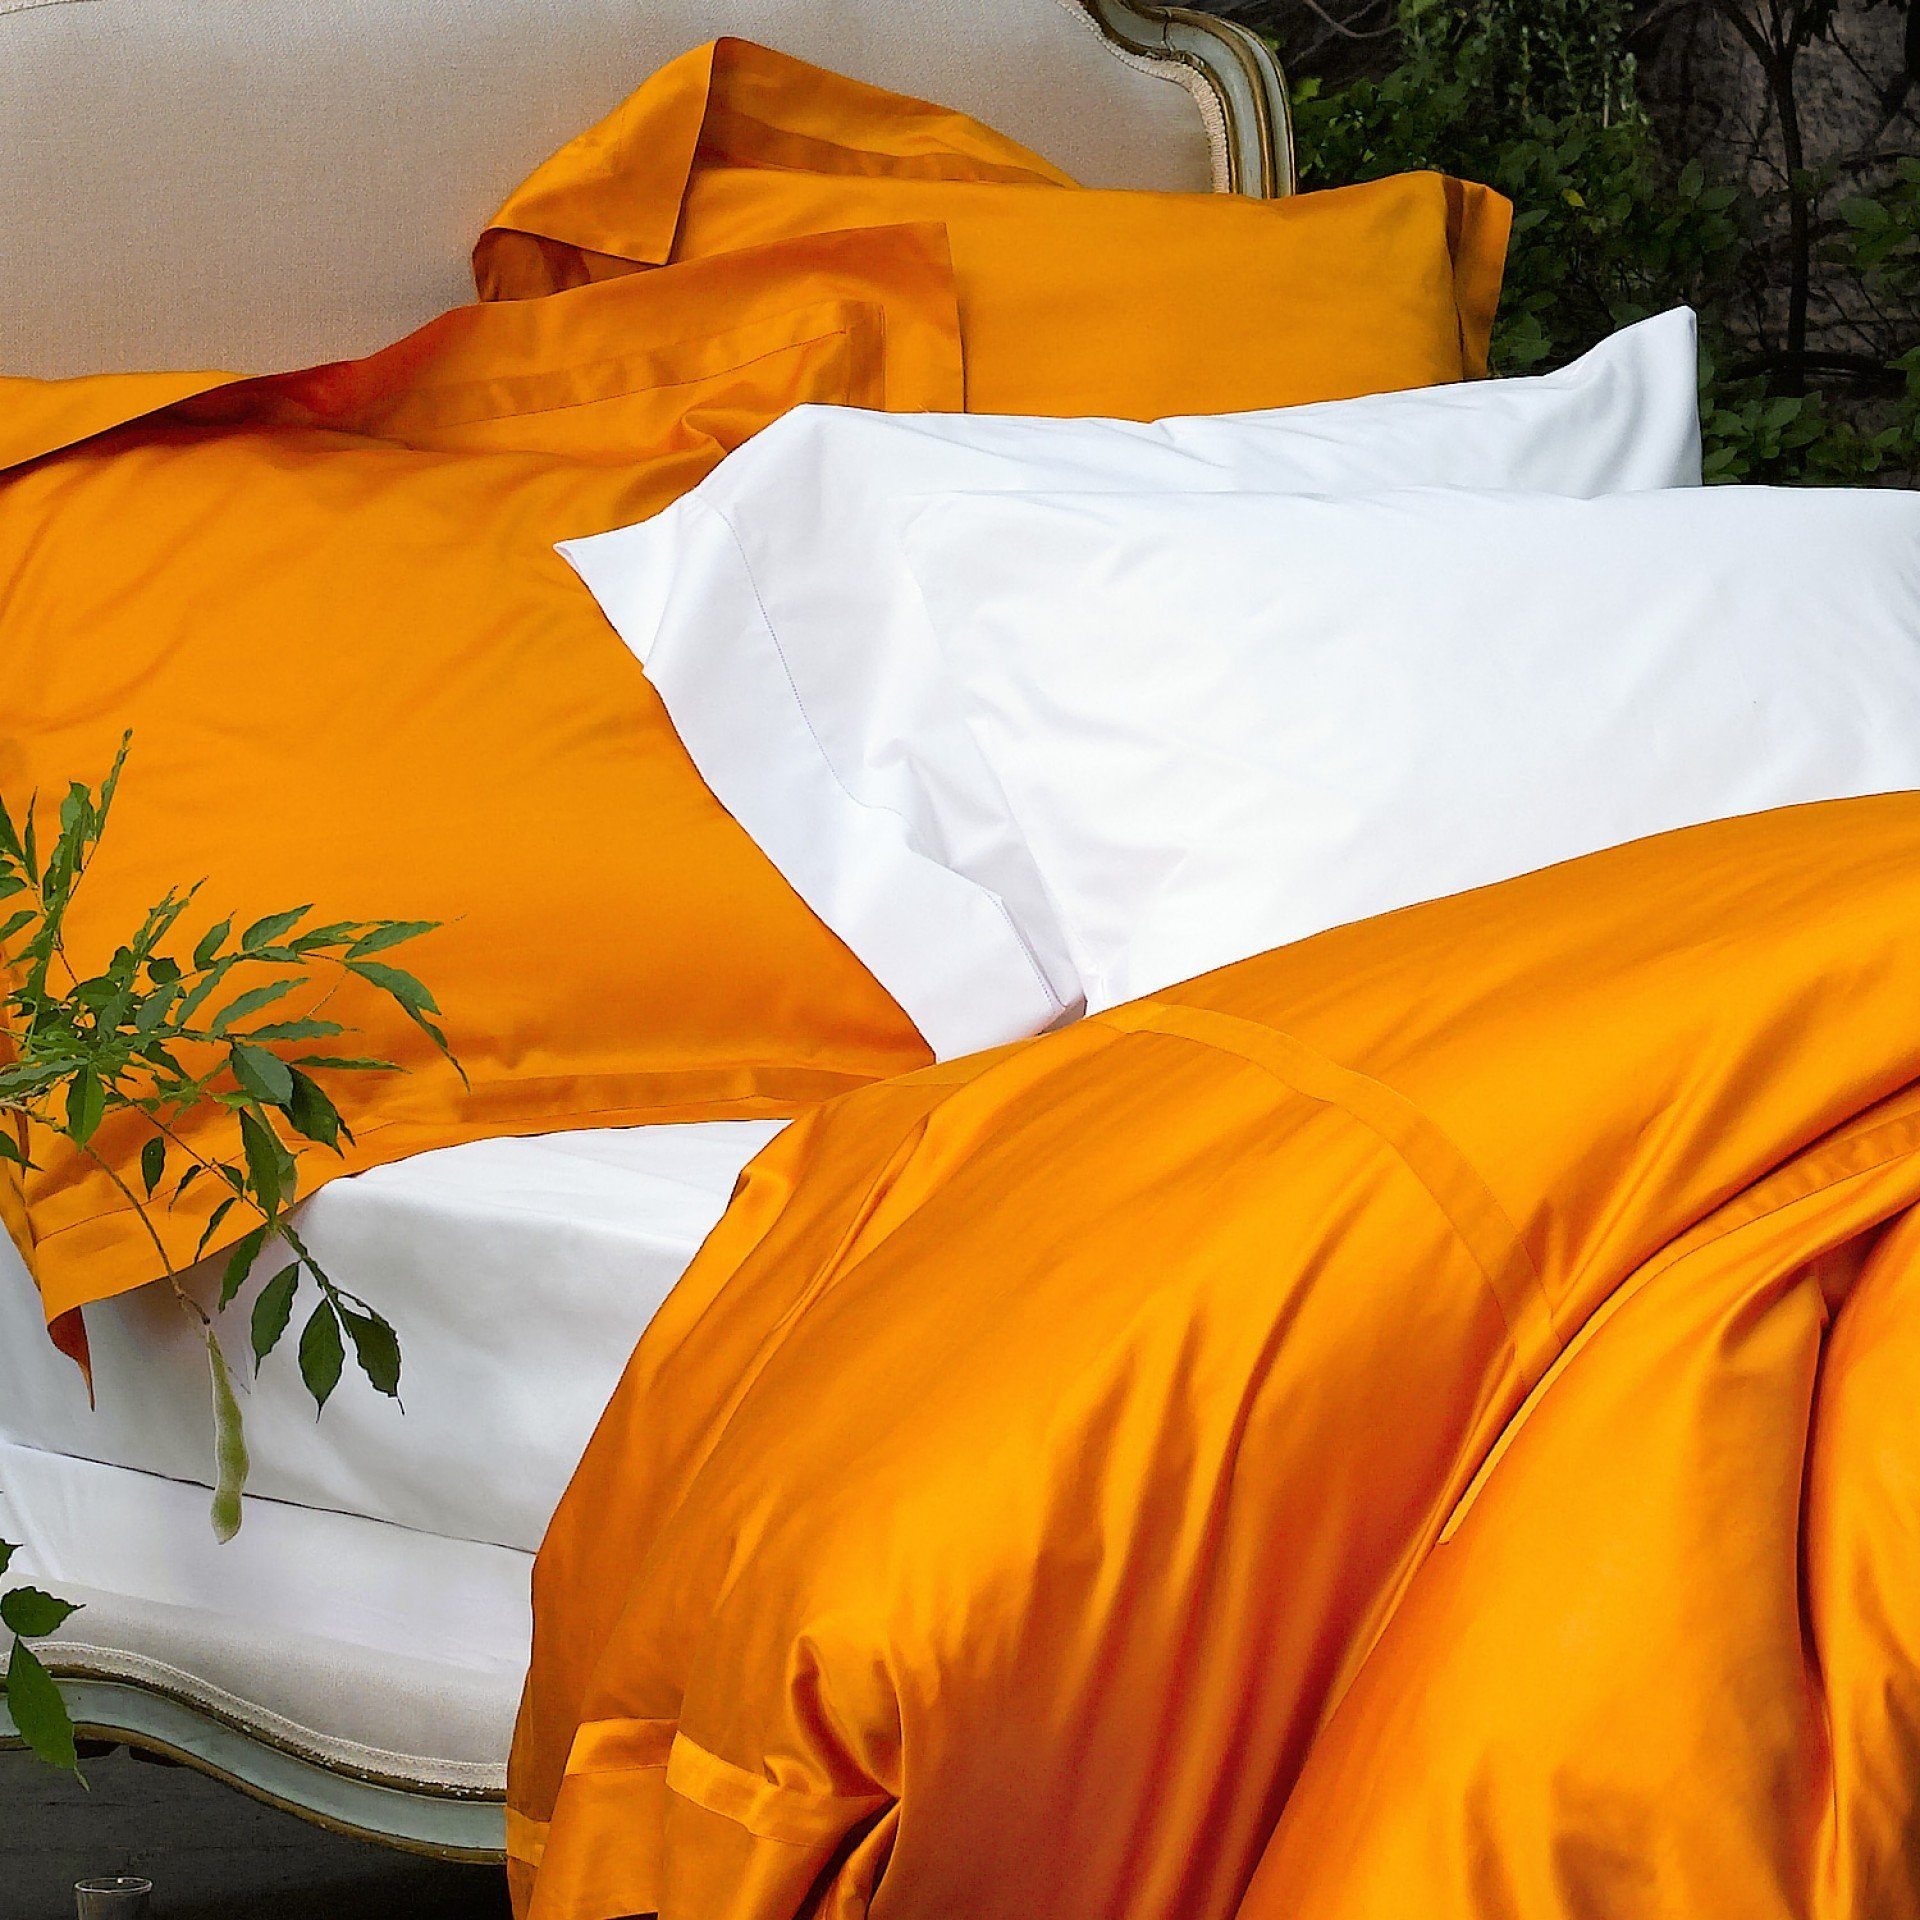 Nocturne Tangerine Duvet Covers by Matouk | Fig Linens and Home